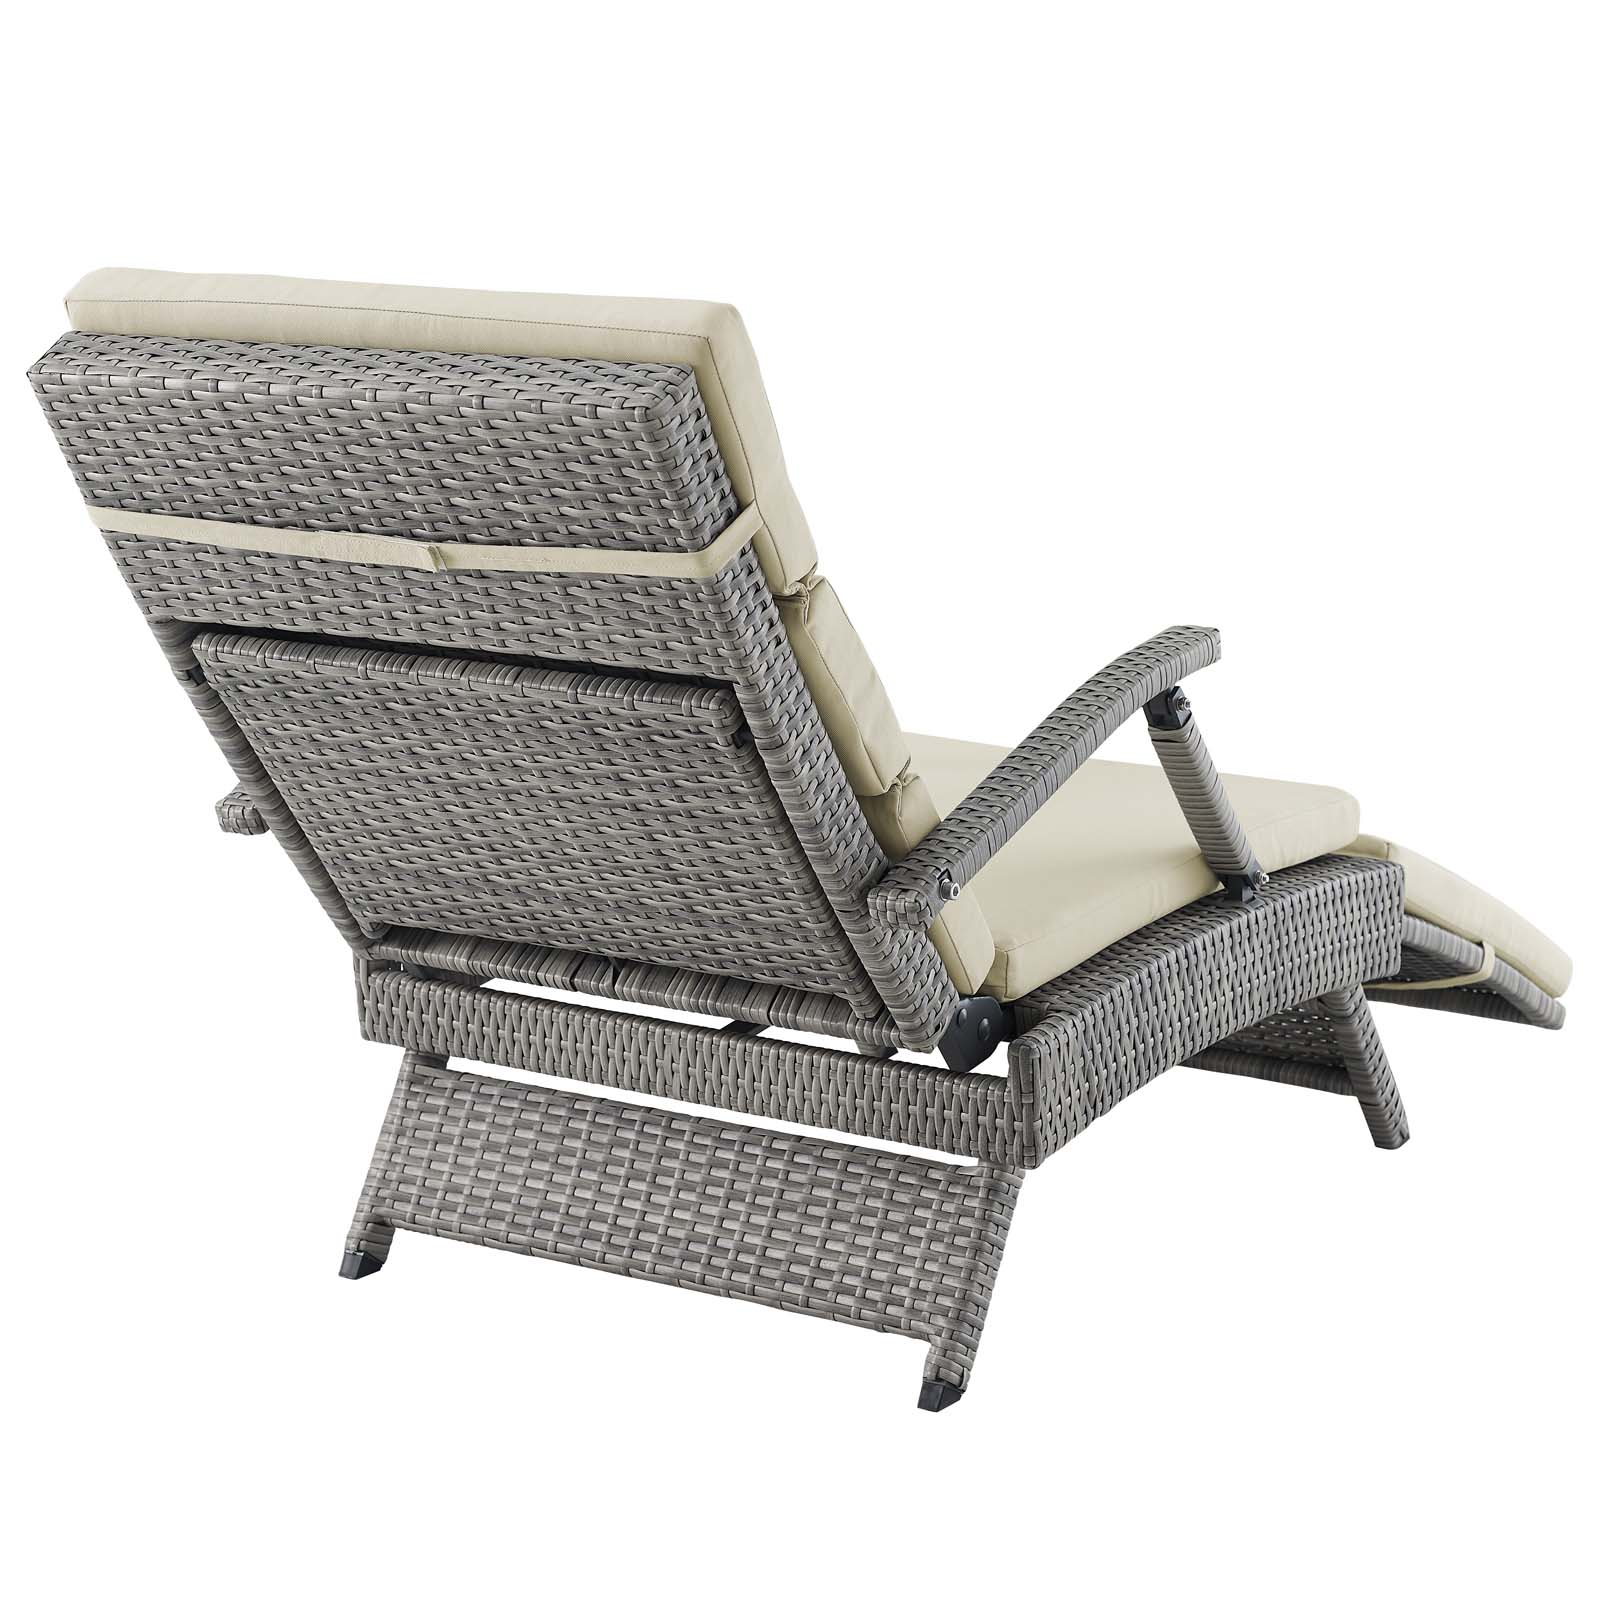 Fantastic Details About Envisage Chaise Outdoor Patio Wicker Rattan Lounge Chair Light Gray Beige Pabps2019 Chair Design Images Pabps2019Com